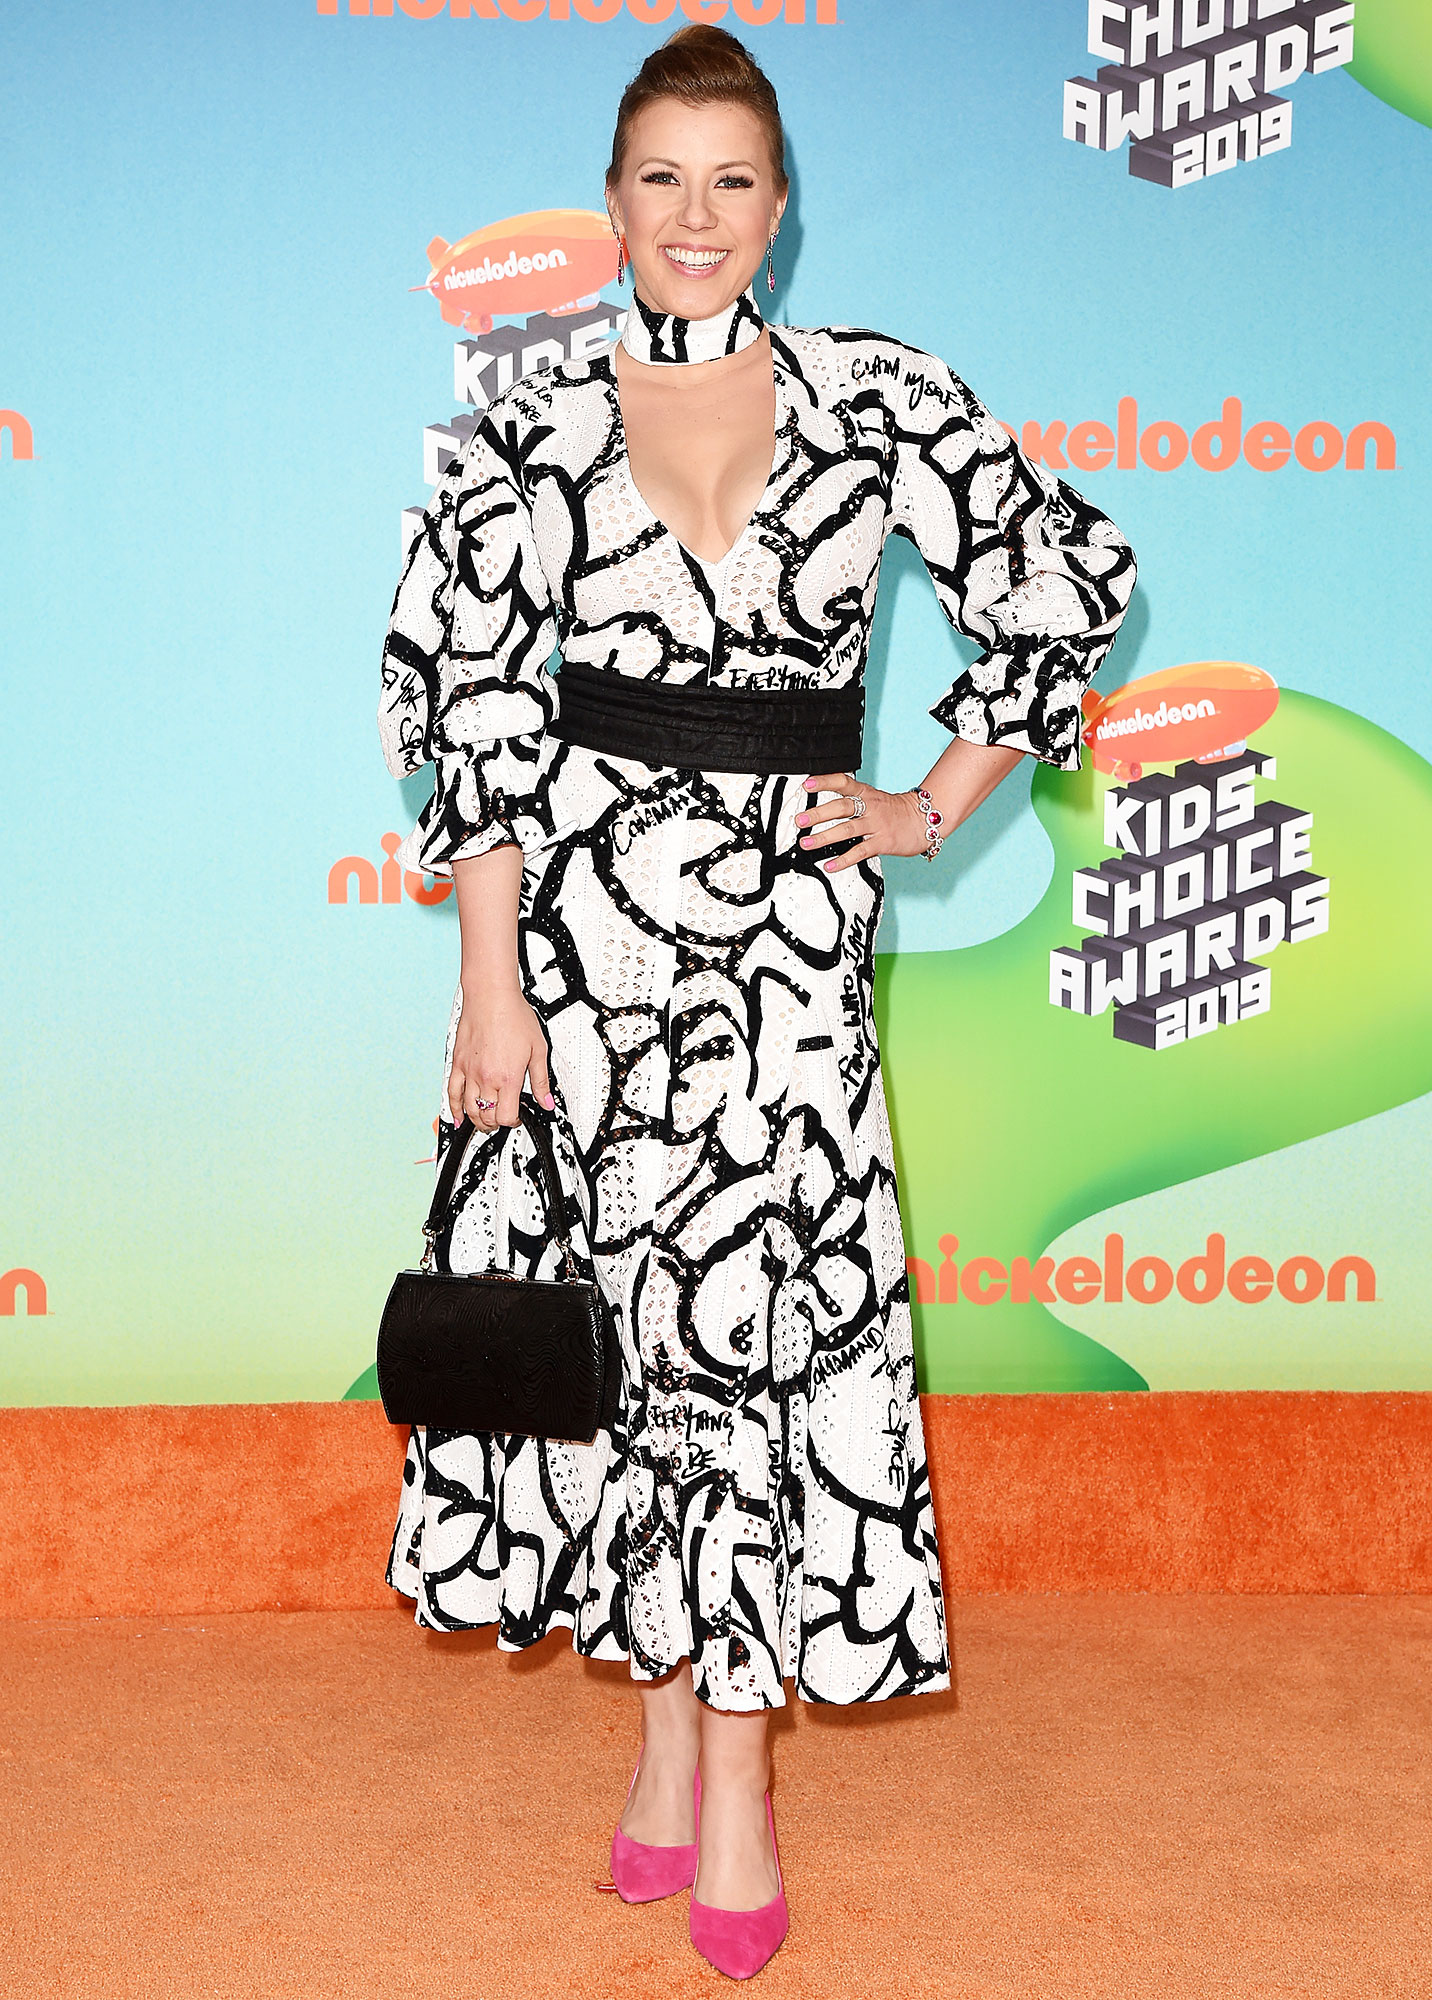 Nickelodeon Kids Choice Awards 2019 Jodie Sweetin - Looking sweet and stylish, the Full House actress wore a black and white print dress that just hit her shins to show off her hot pink pumps.